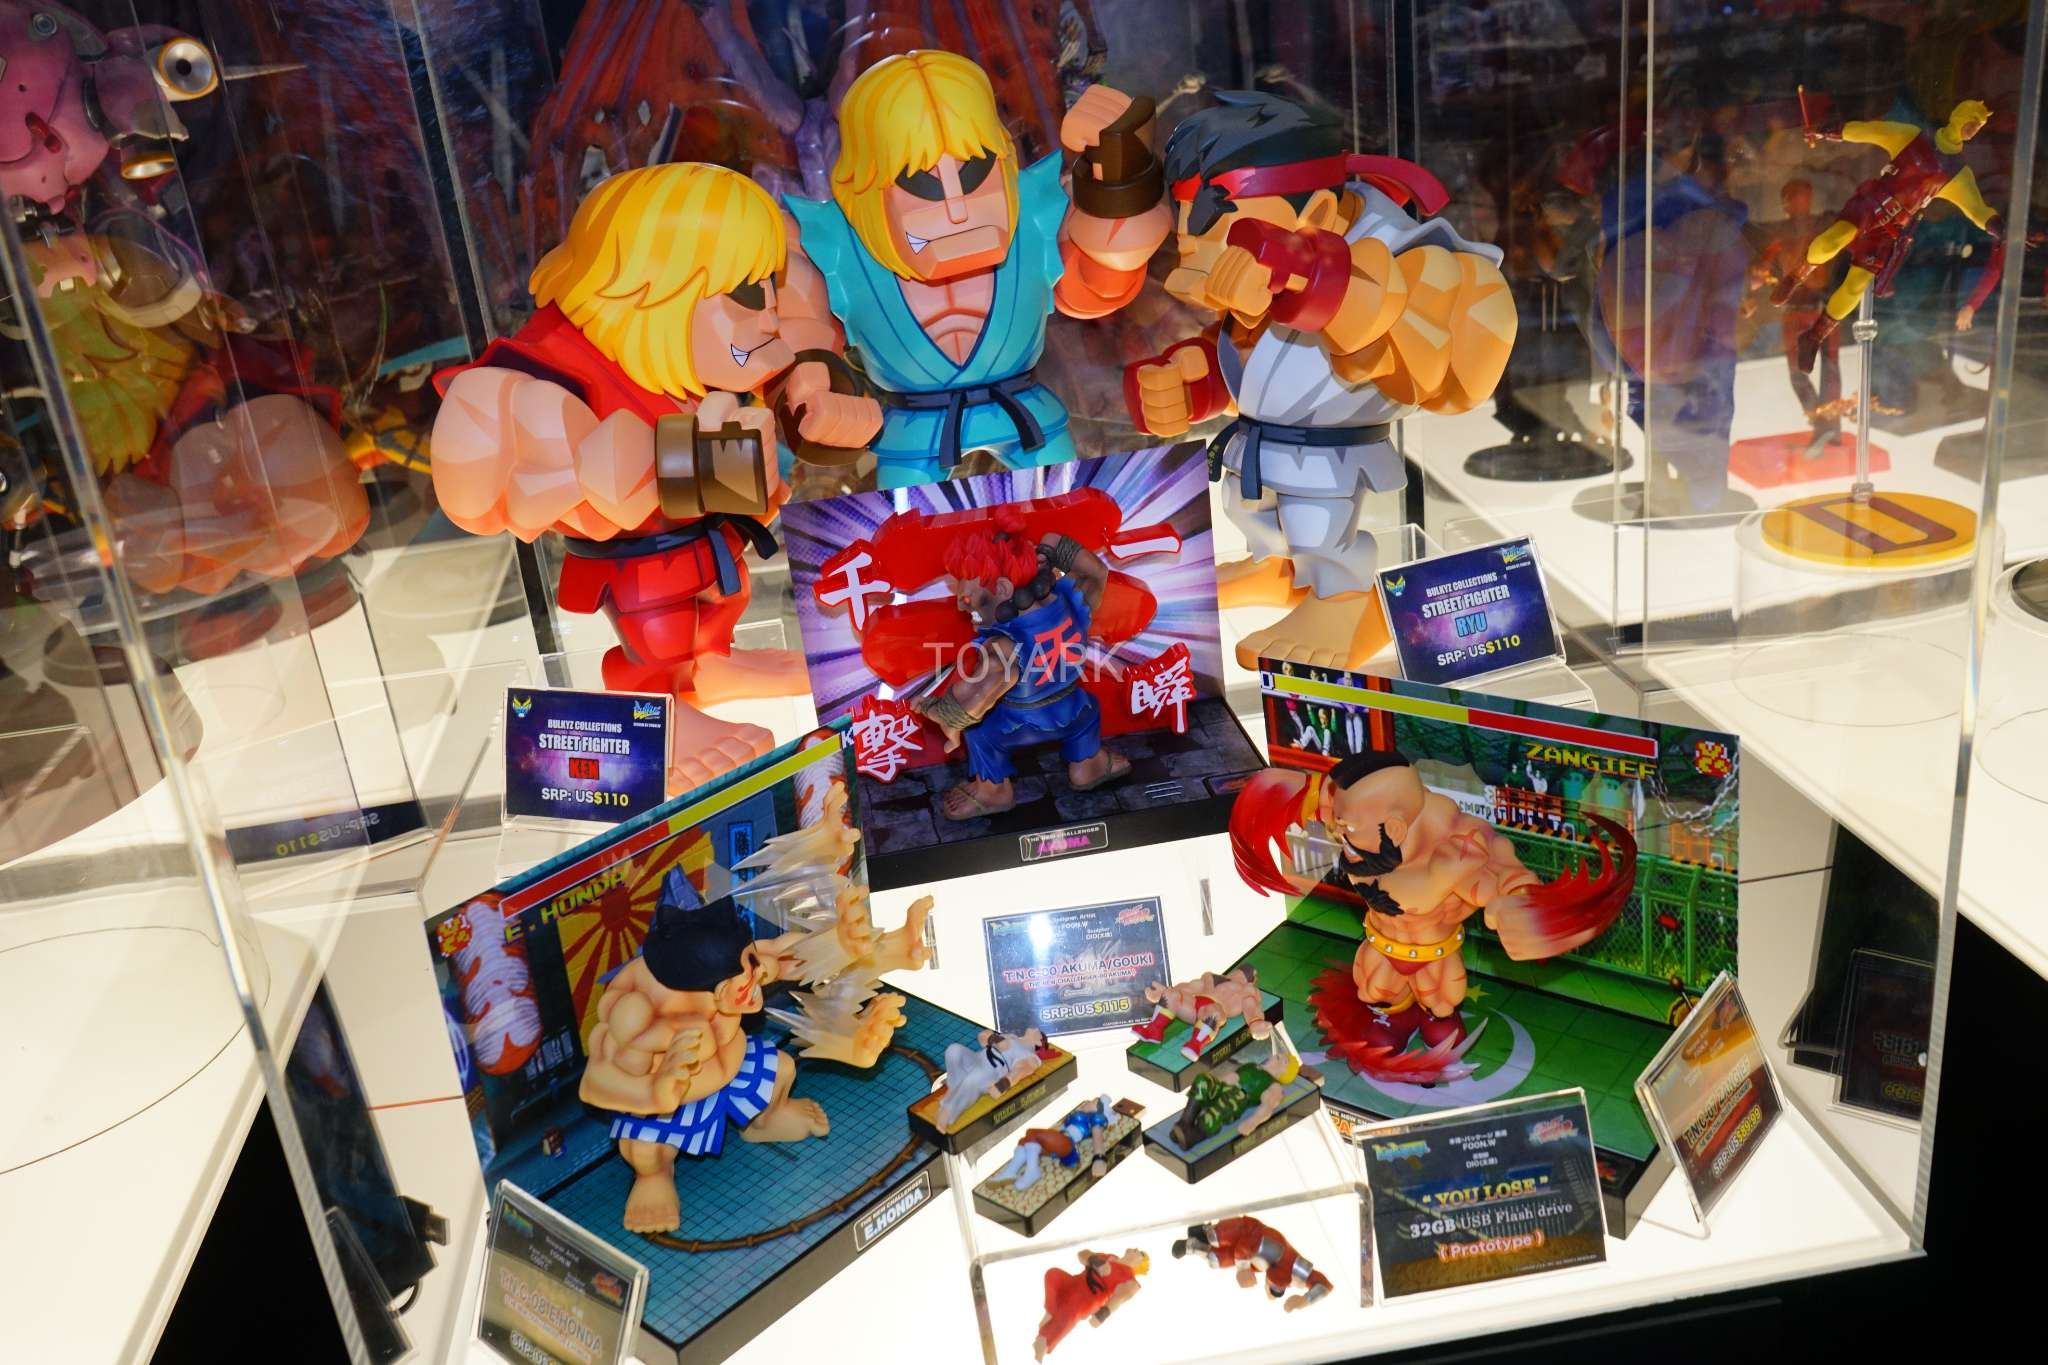 Best Toys For Big Boys : Toy fair gallery blizzard and big boys toys at